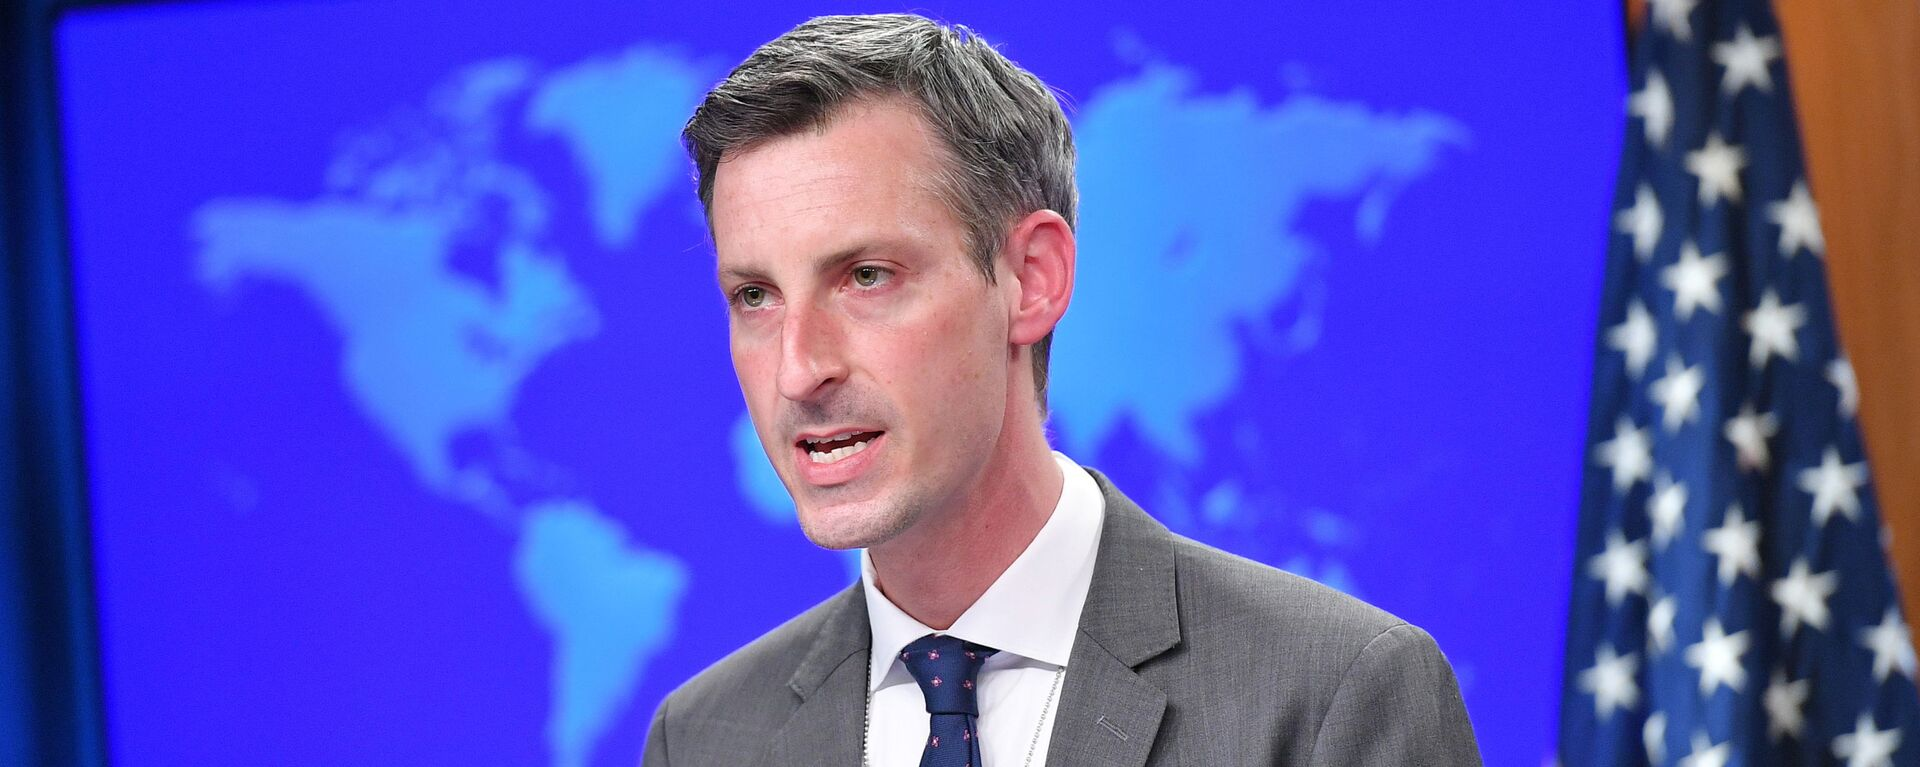 U.S. State Department spokesman Ned Price speaks during the release of the 2020 Country Reports on Human Rights Practices at the State Department in Washington, DC, U.S., March 30, 2021. - Sputnik 日本, 1920, 19.05.2021